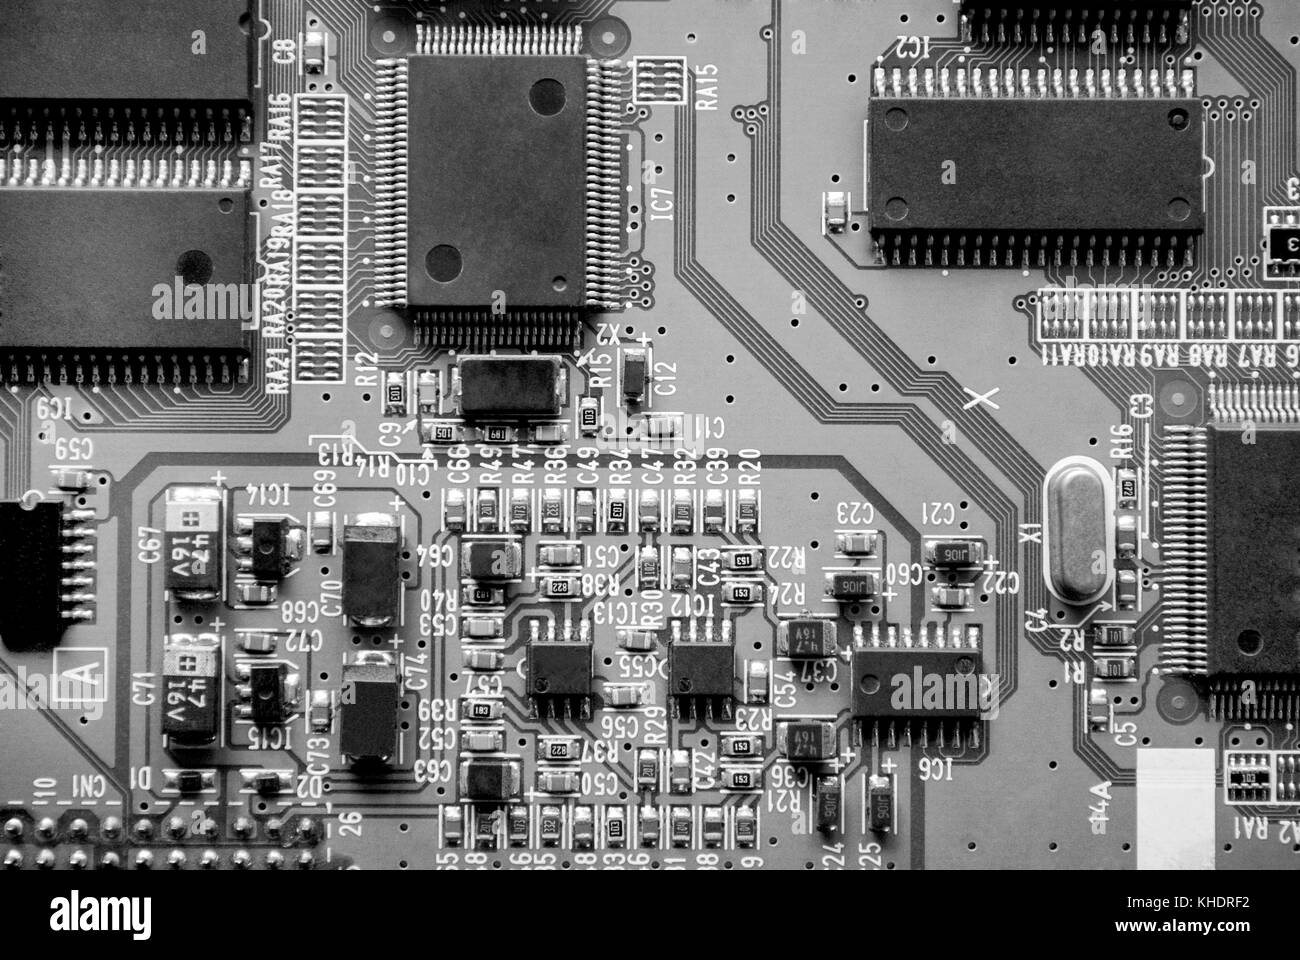 The computer electronic card with chips, microprocessors, transistors, explorers and other electronic parts. - Stock Image